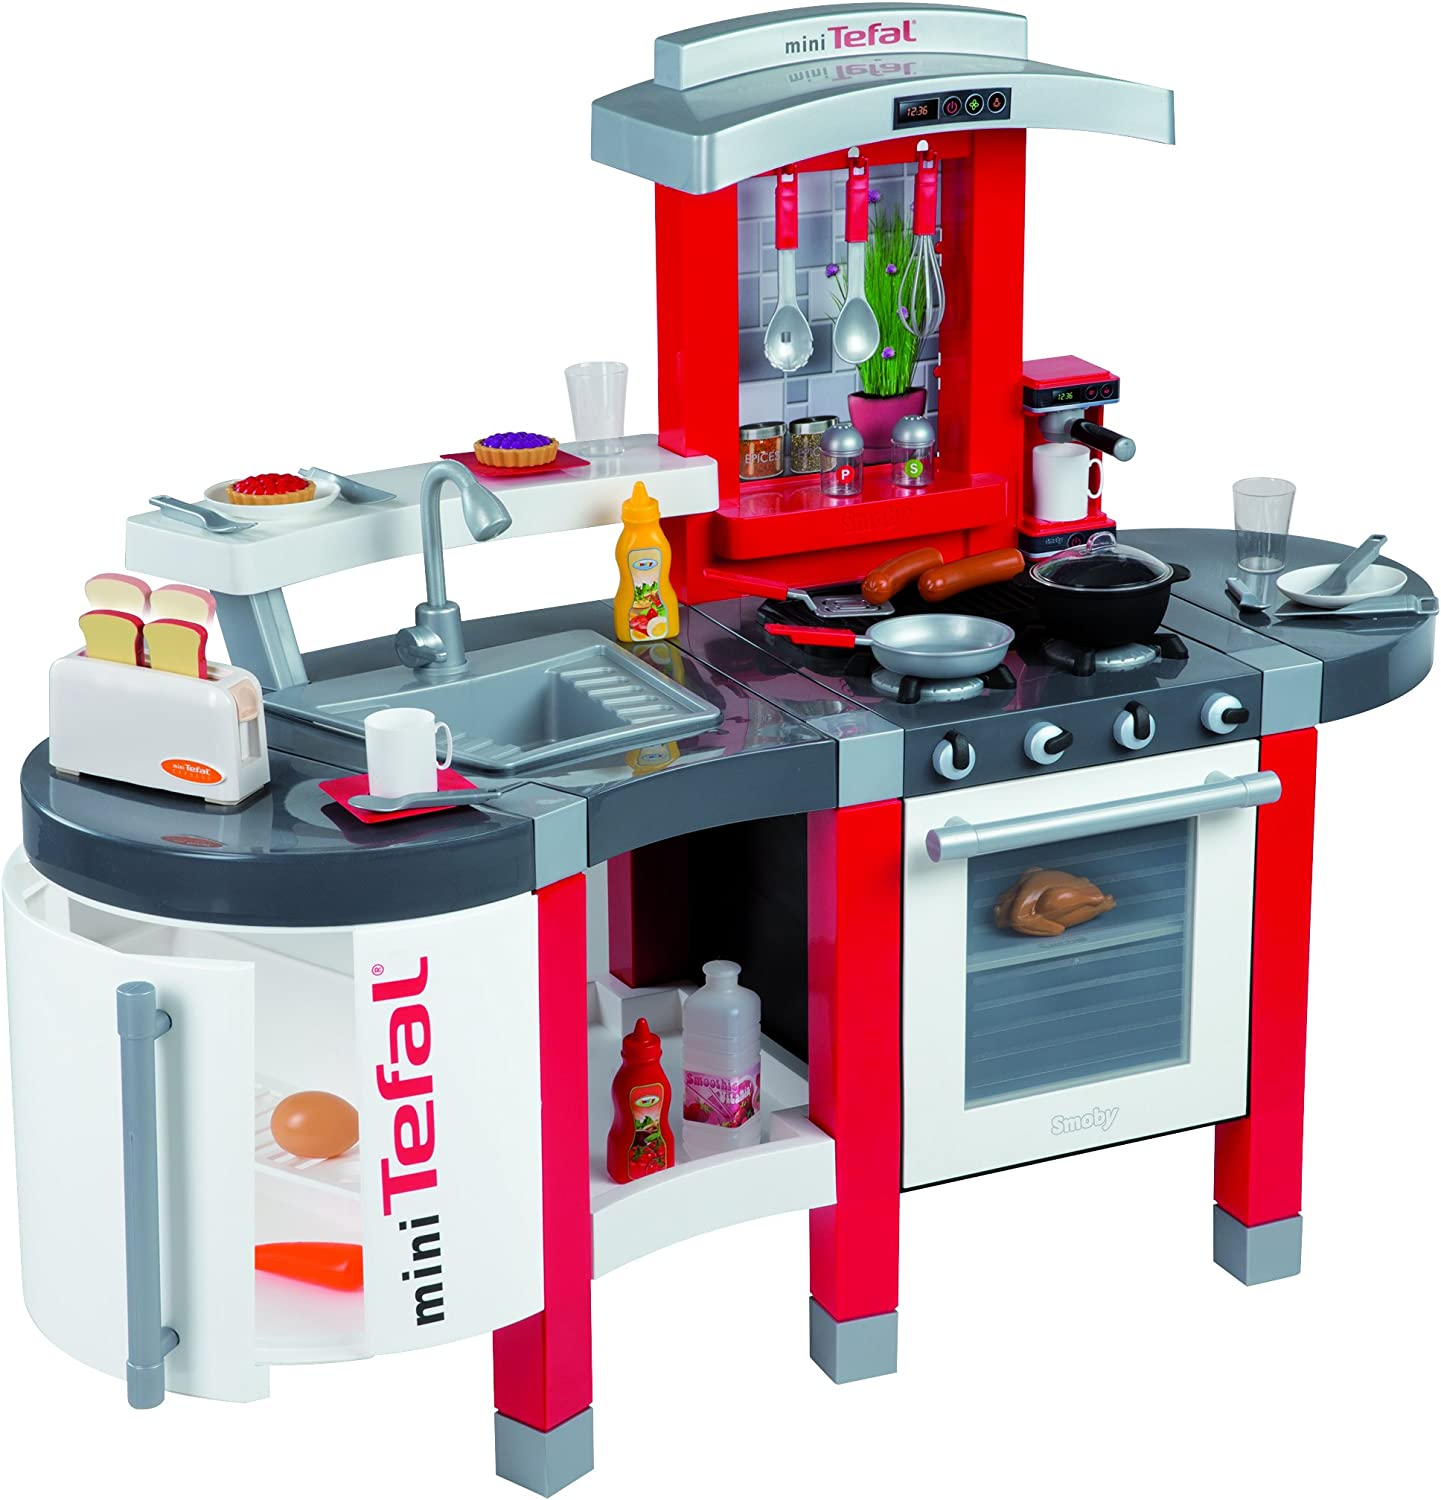 Smoby Tefal Super Chef Kitchen Amazon Co Uk Toys Games